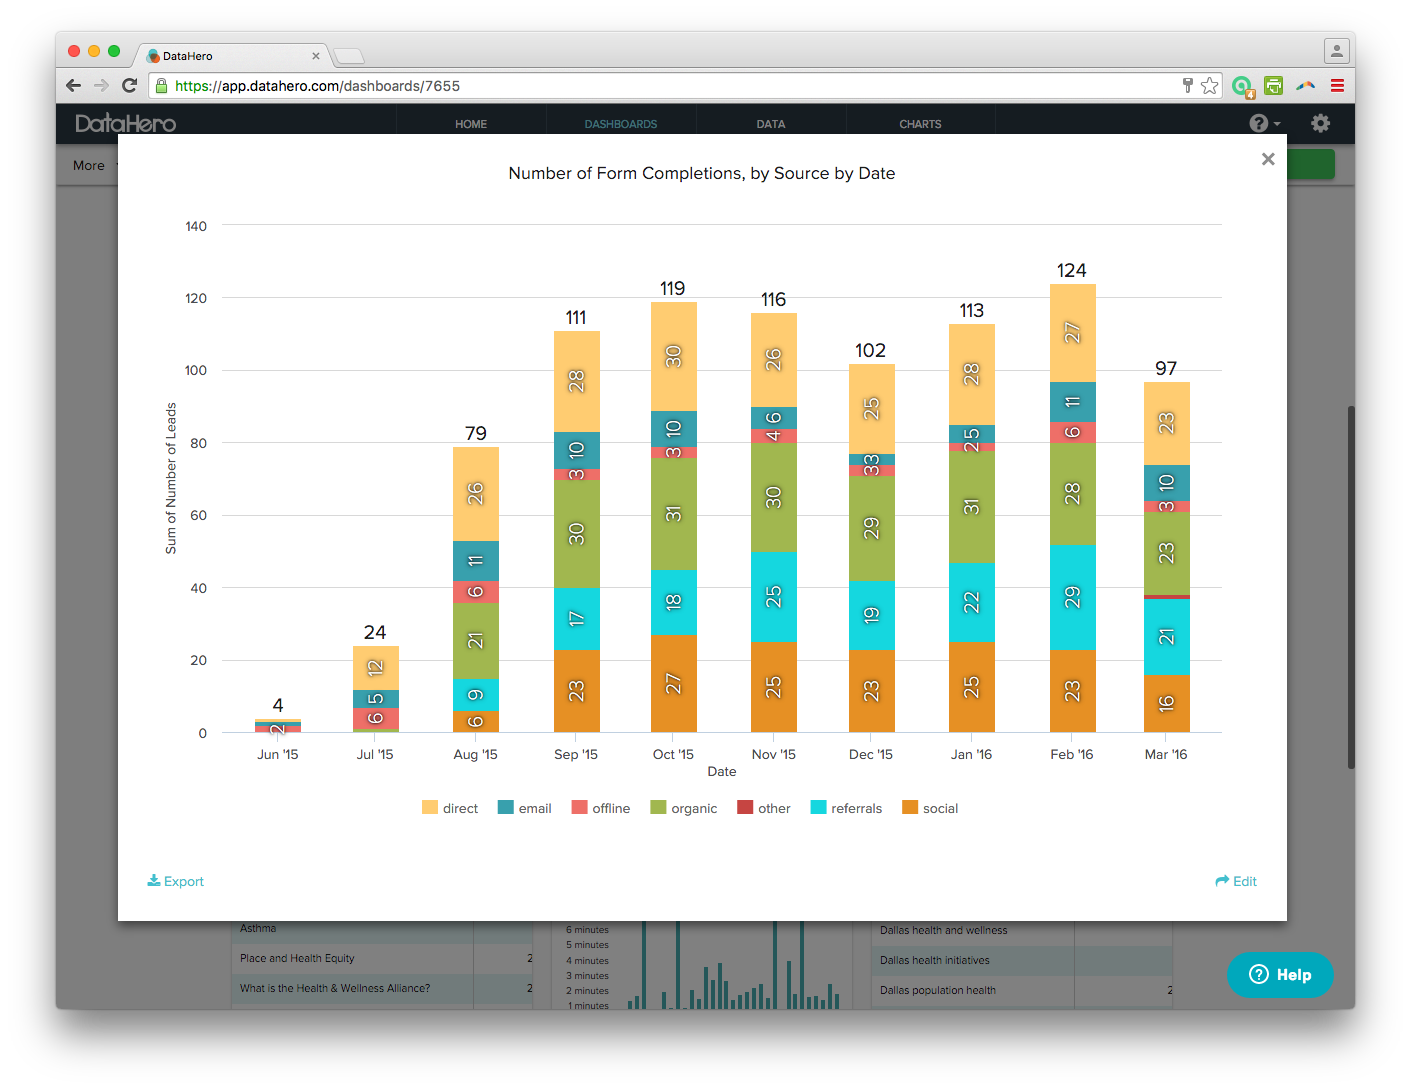 You can view more detailed information right through the DataHero dashboard.